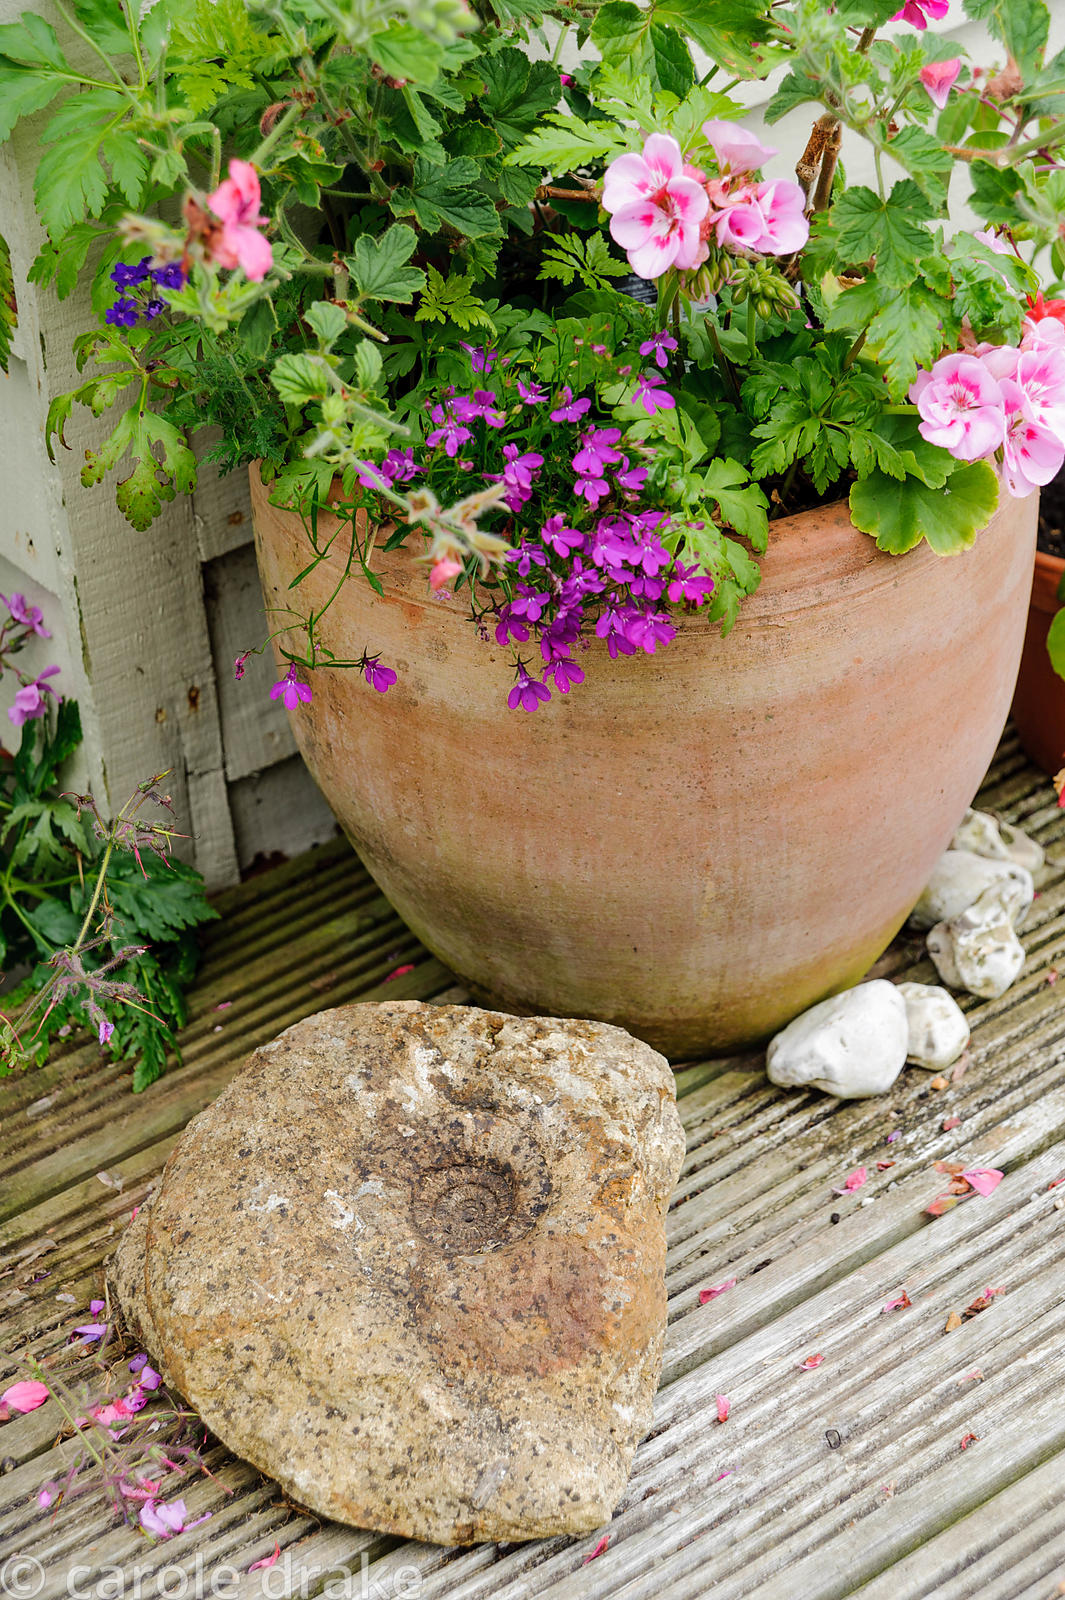 Terracotta pot planted with pelargonium and lobelia with stone in front containing fossilised ammonite.